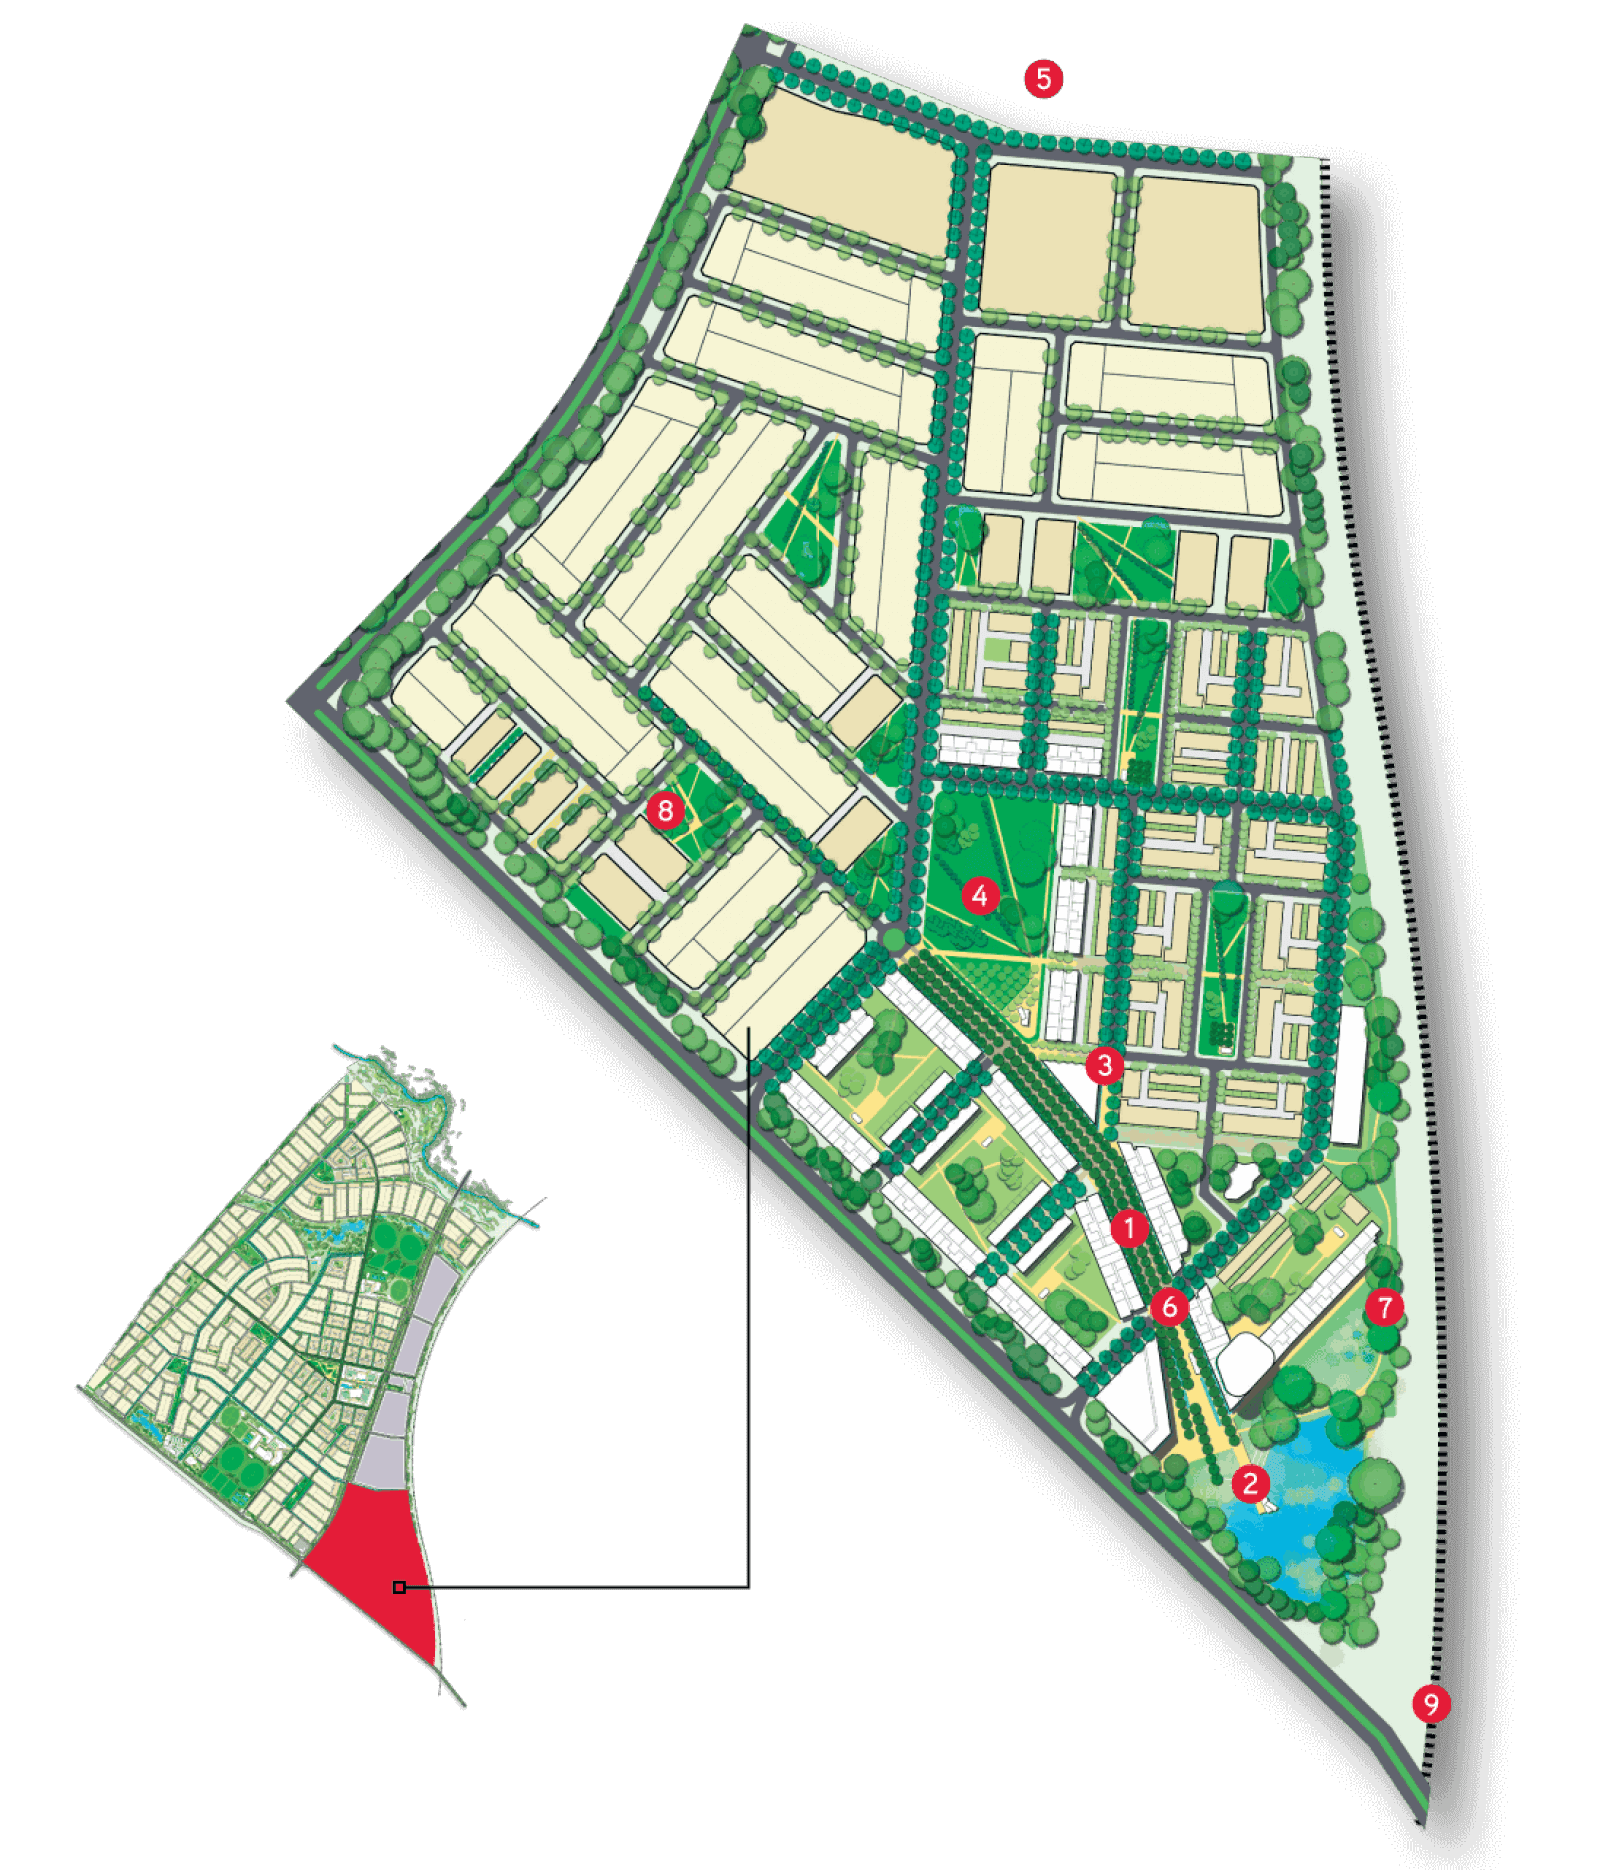 Map of Jubilee precinct